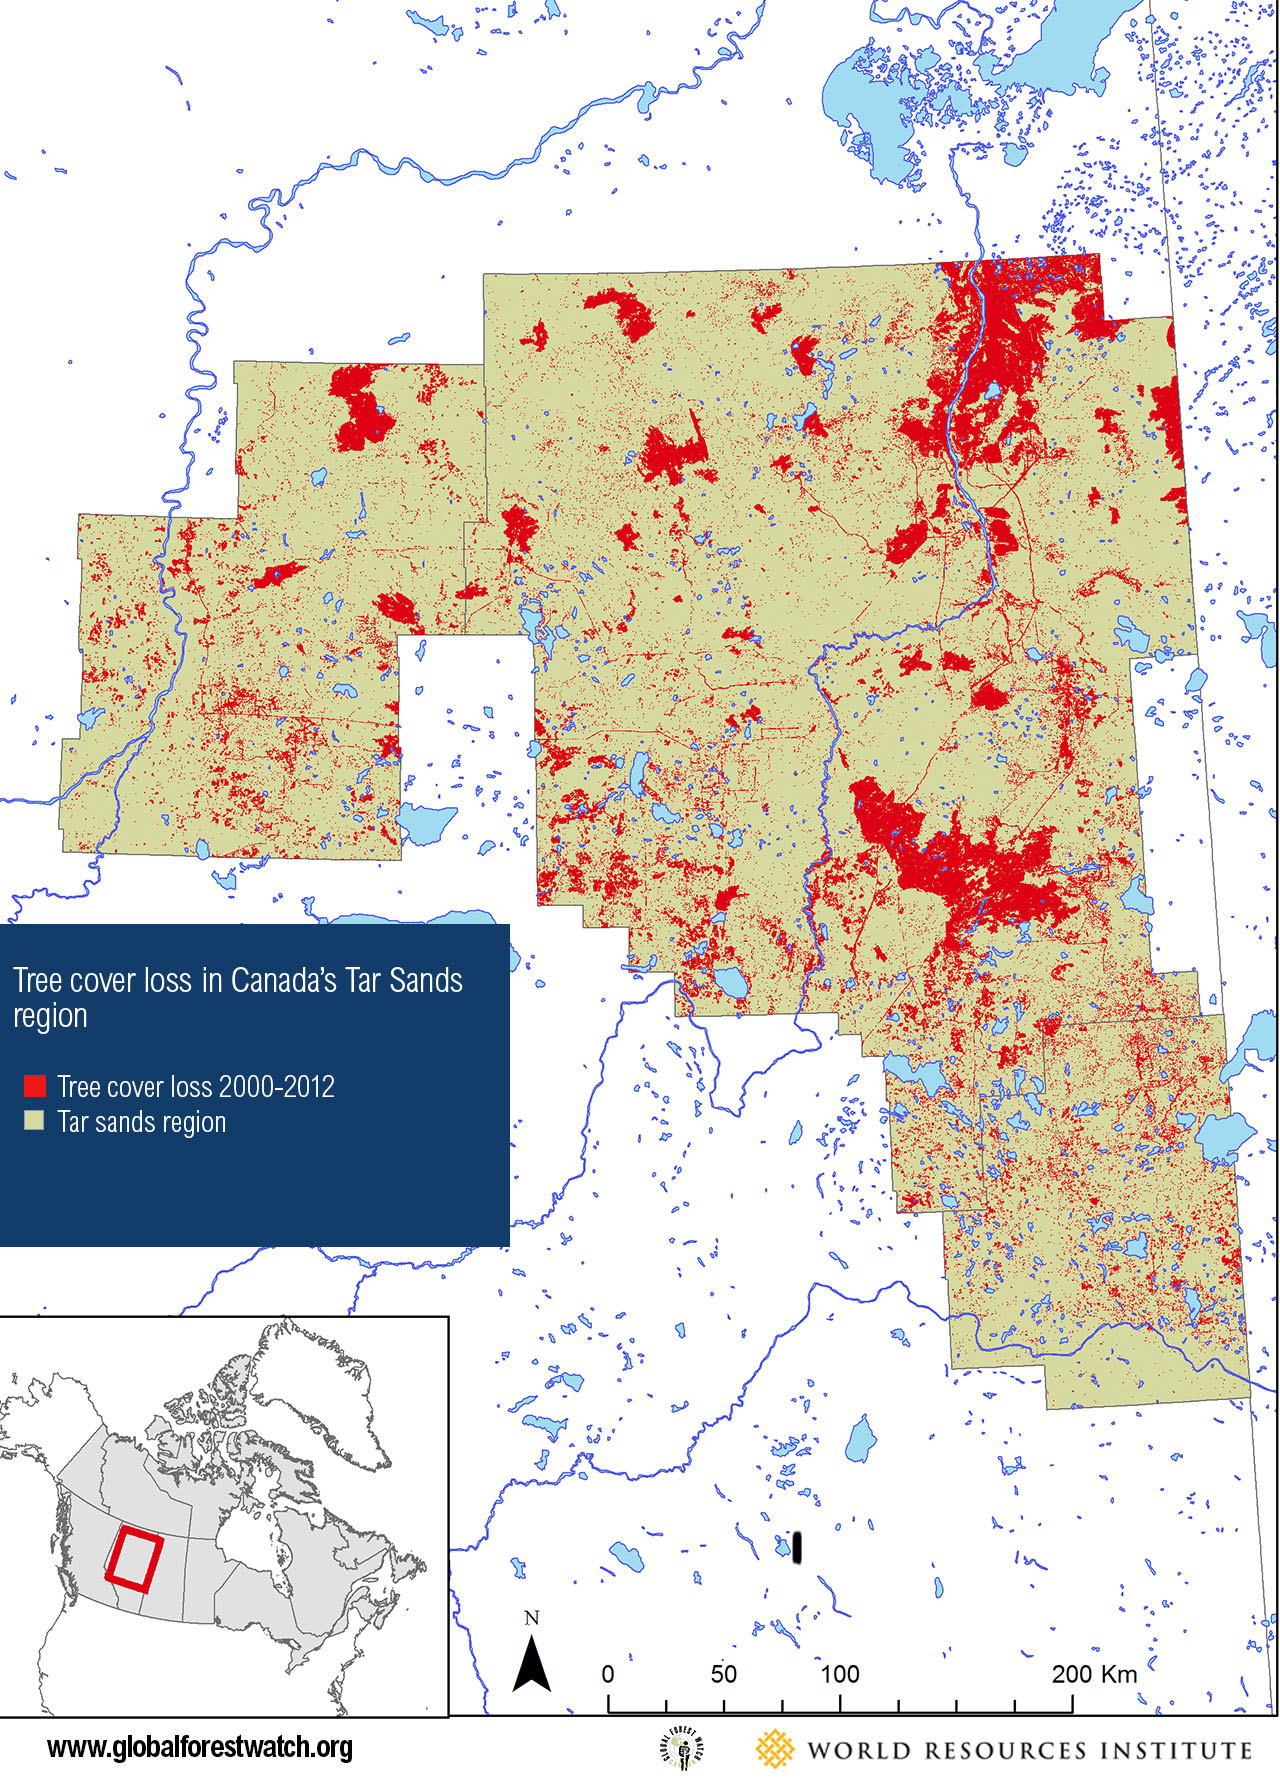 <p>MAP A: Tree cover loss of 775,500 hectares in Canada's Tar Sands region 2000-2012</p>